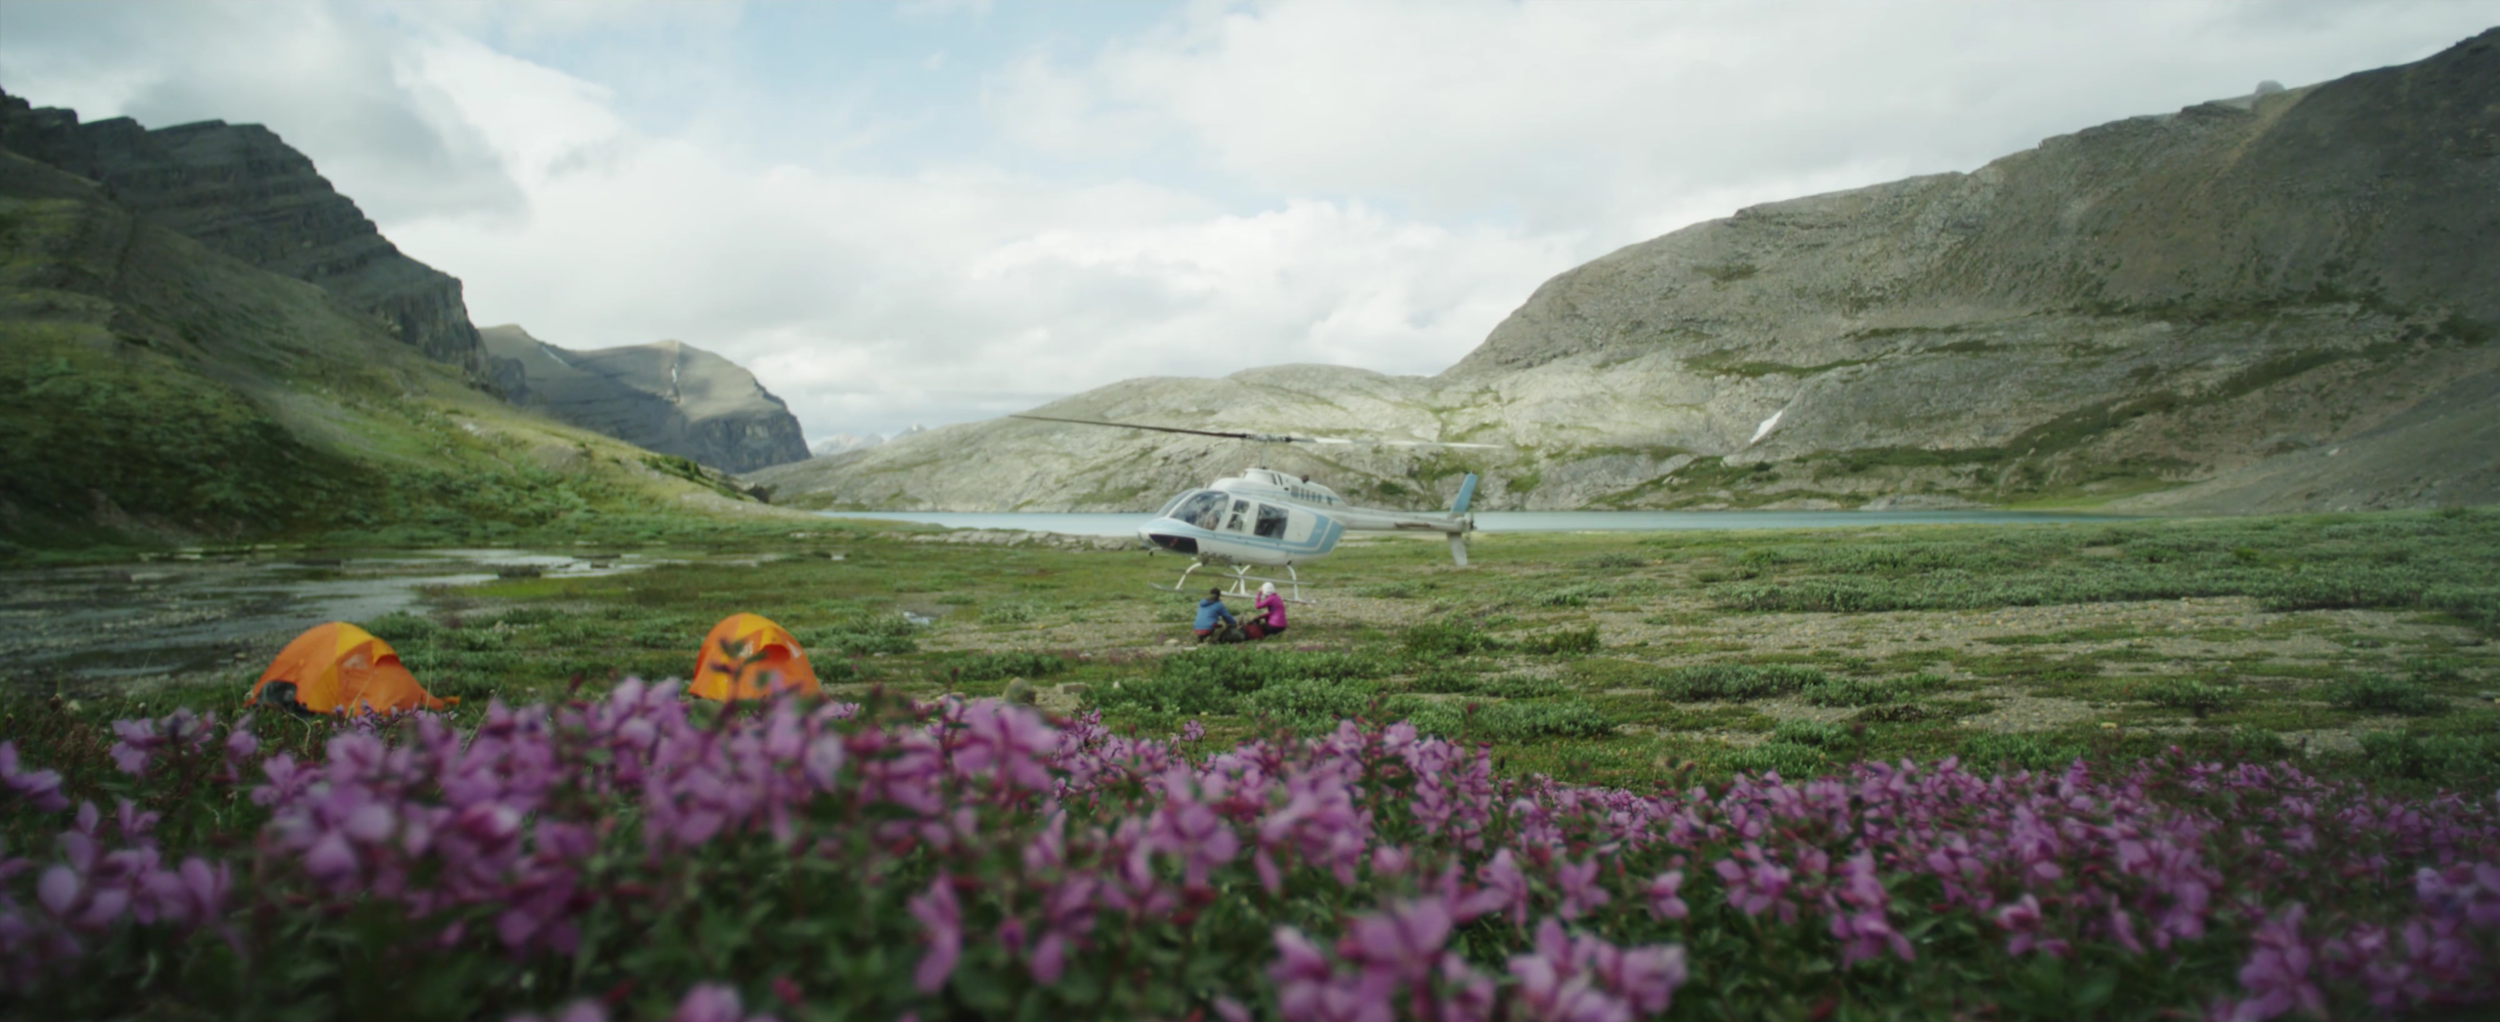 HELI_CAMPING_11.png